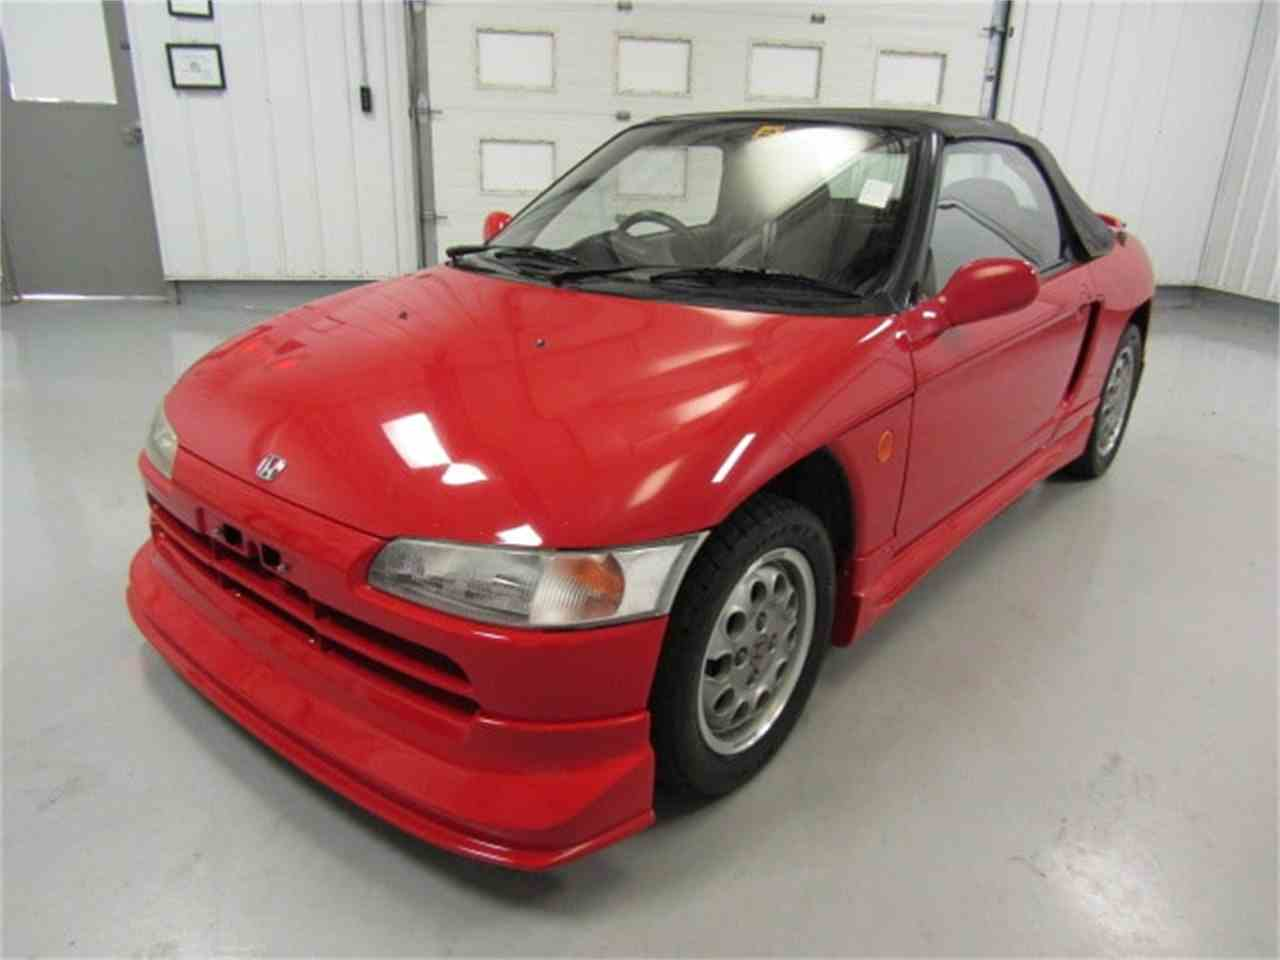 Large Picture of '91 Honda Beat located in Virginia - $6,999.00 Offered by Duncan Imports & Classic Cars - JL83